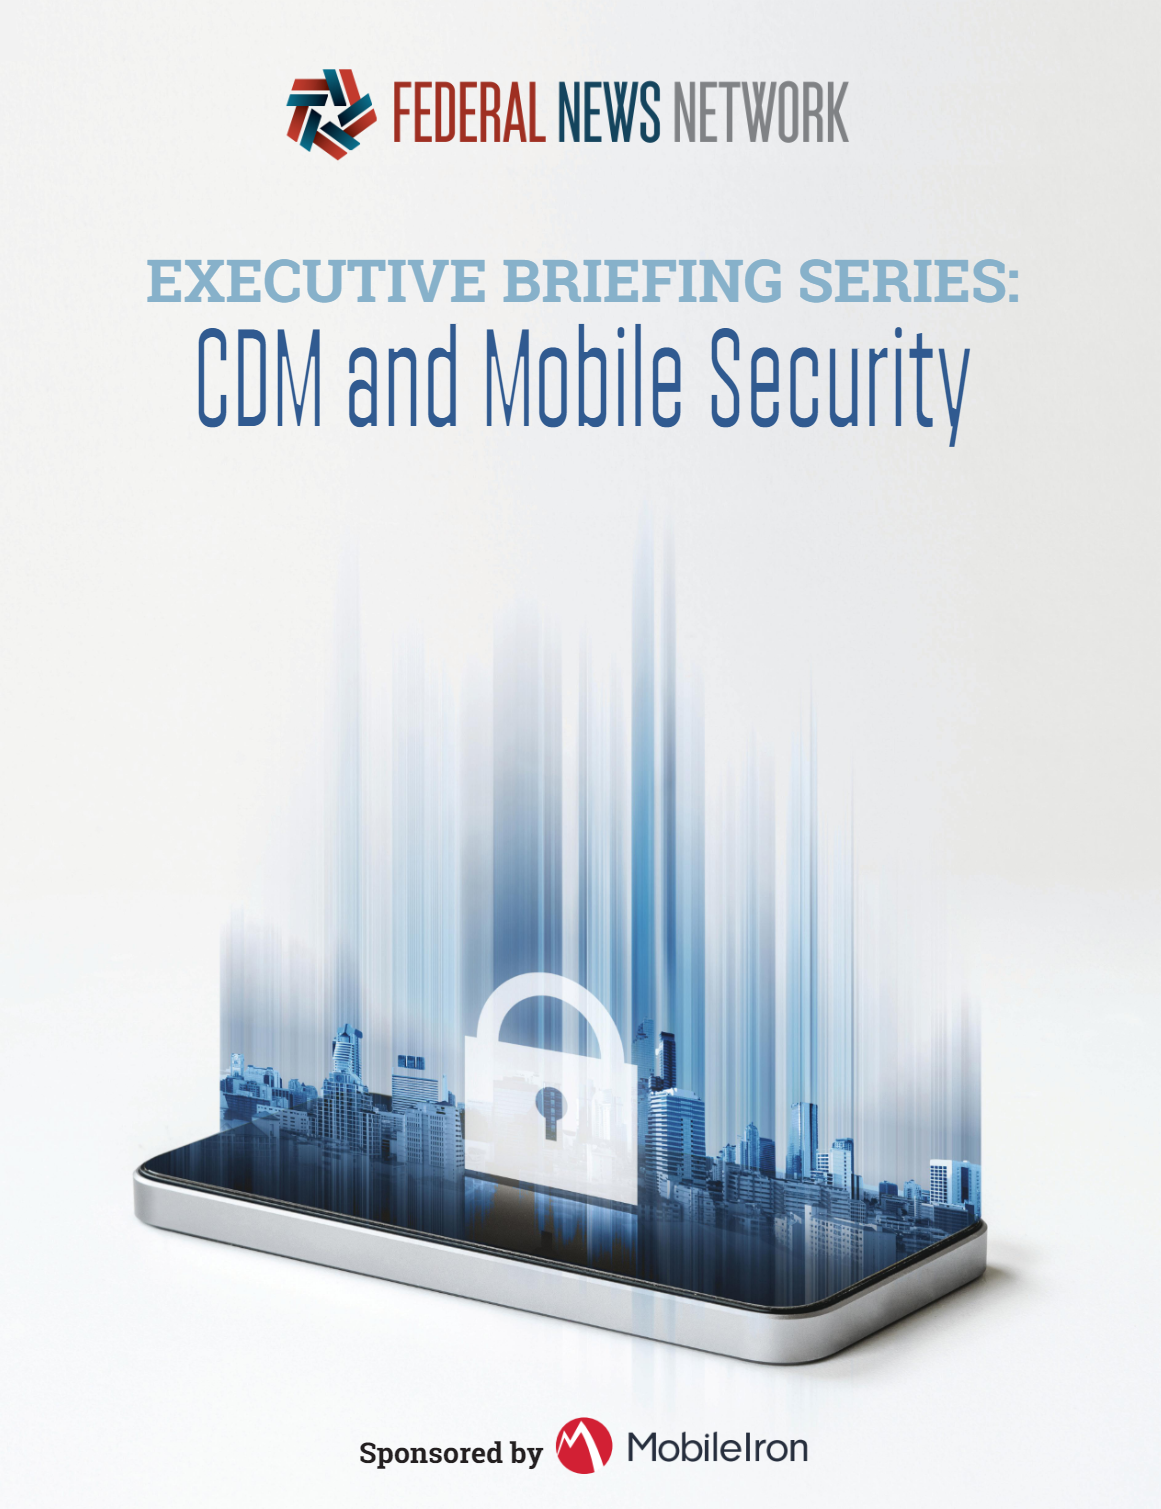 Executive Briefing Series: CDM and Mobile Security